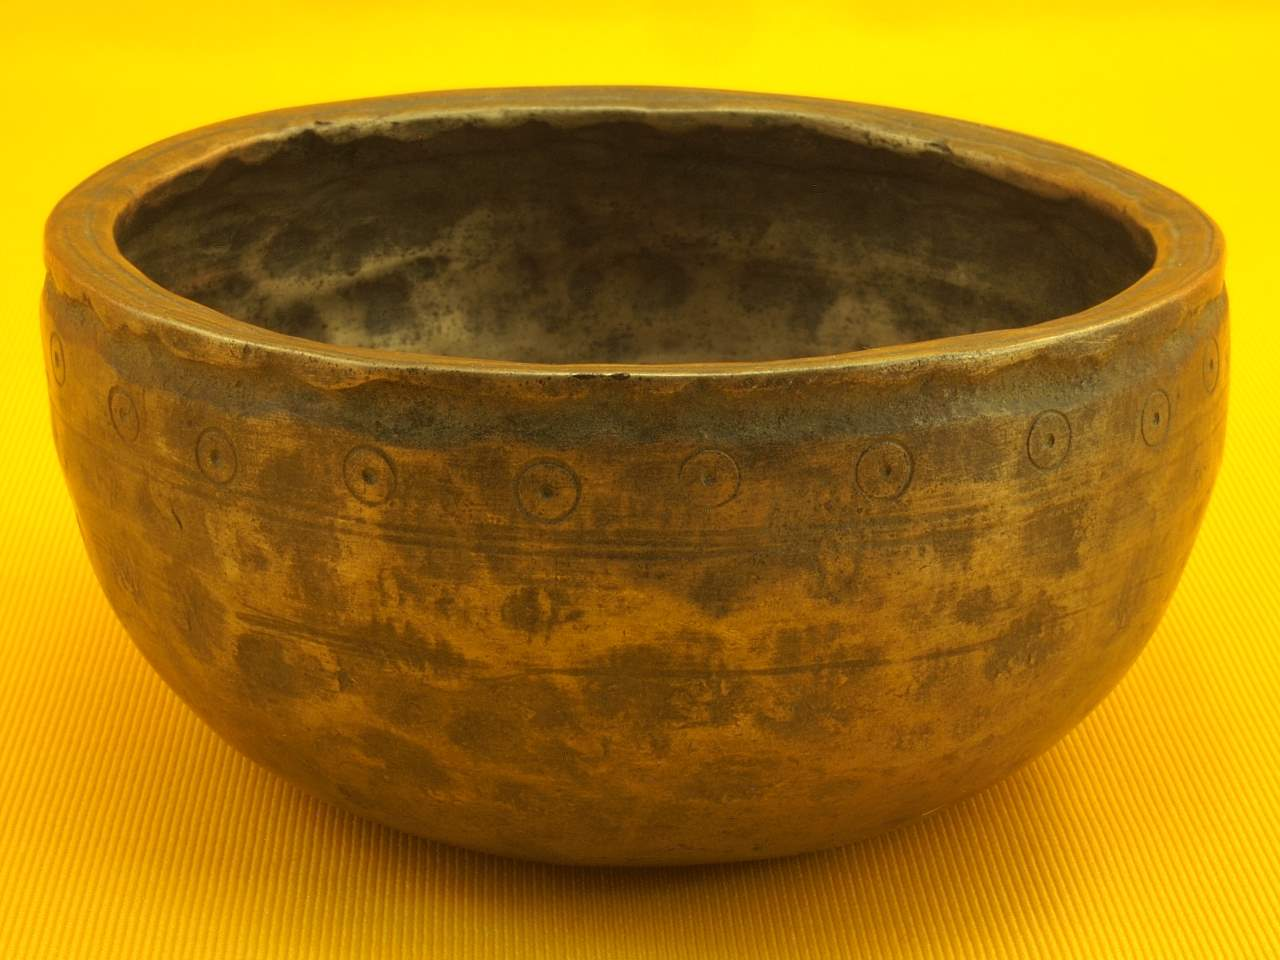 Thick Antique Thadobati Singing Bowl with extensive art and high tone